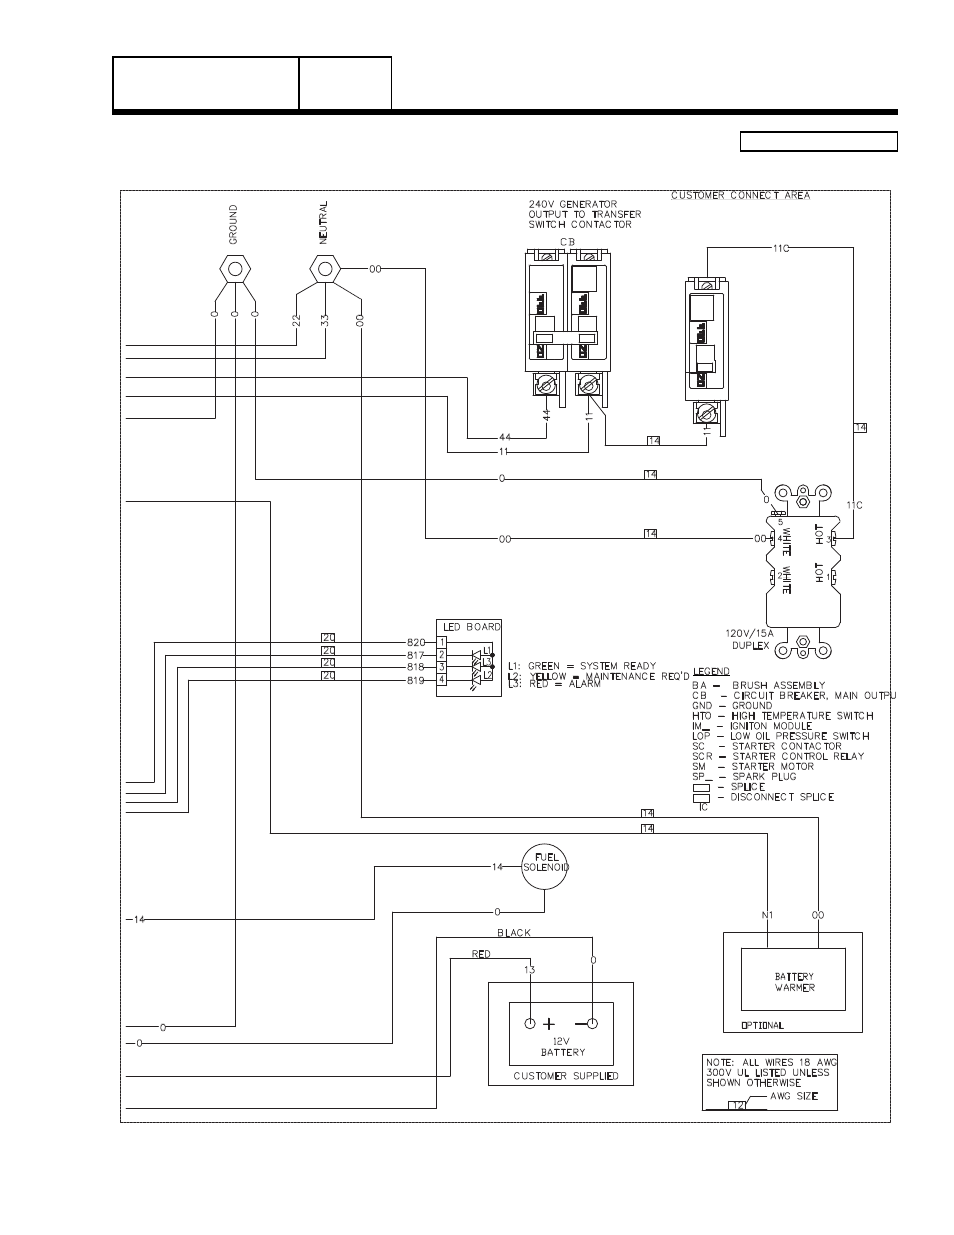 8 Kw Generac Wiring Diagram - Data Wiring Diagram Update